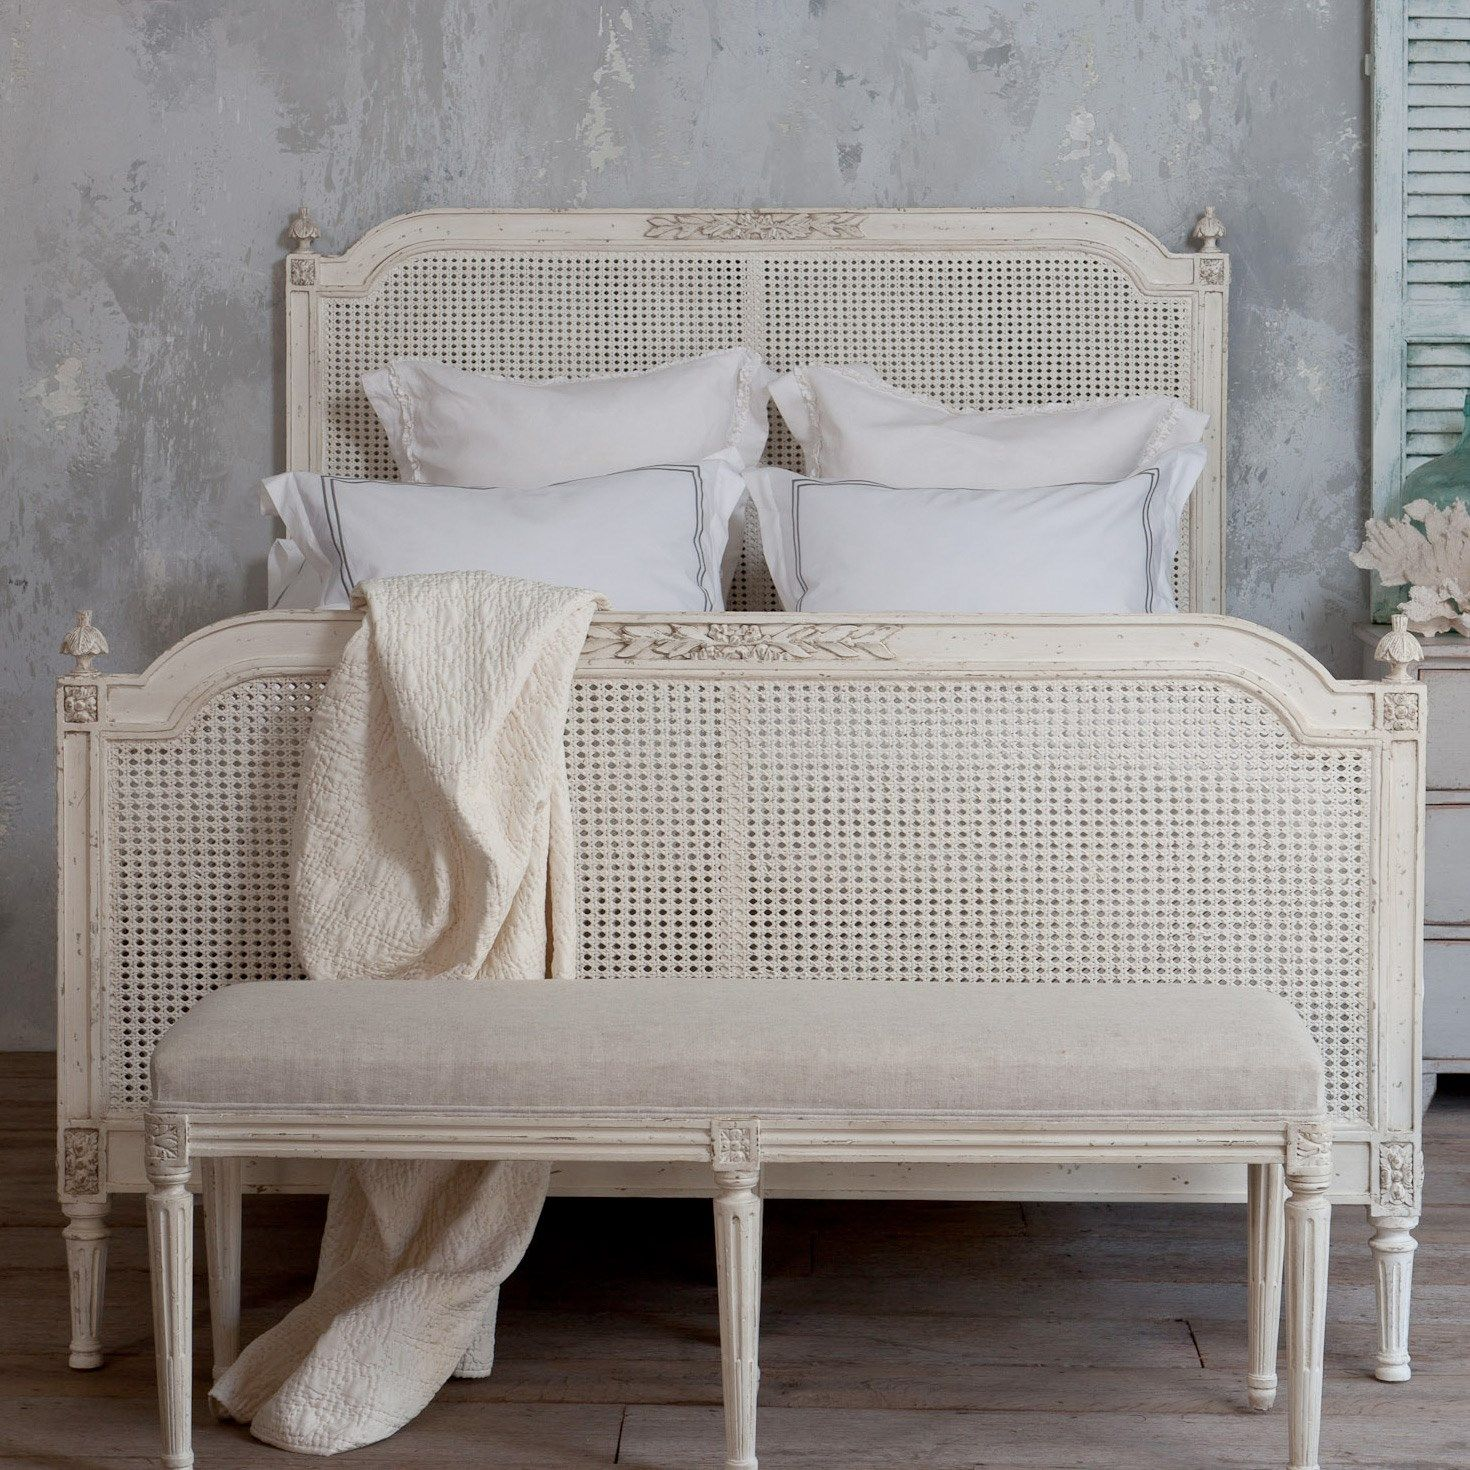 Eloquence Blanka Cane Antique White Bed Laylagrayce